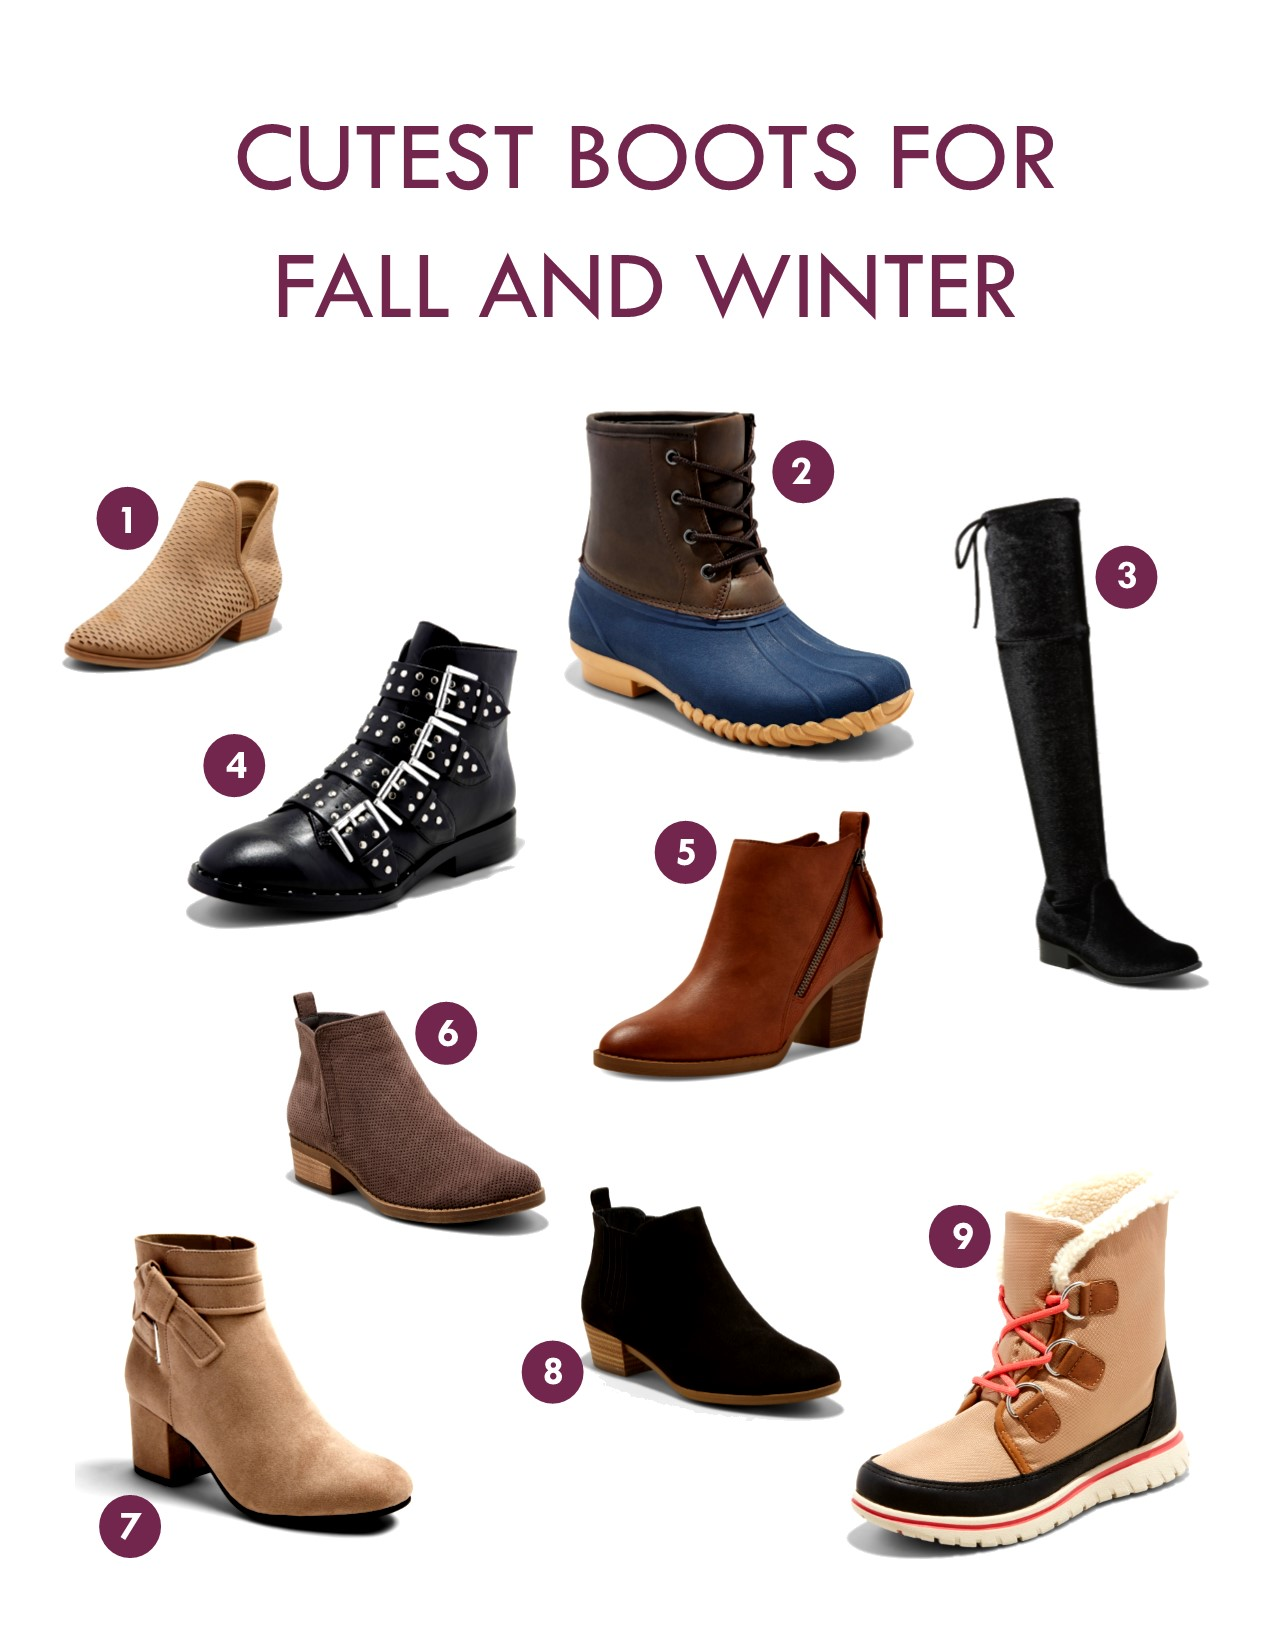 Best Boots for Fall and Winter.jpg